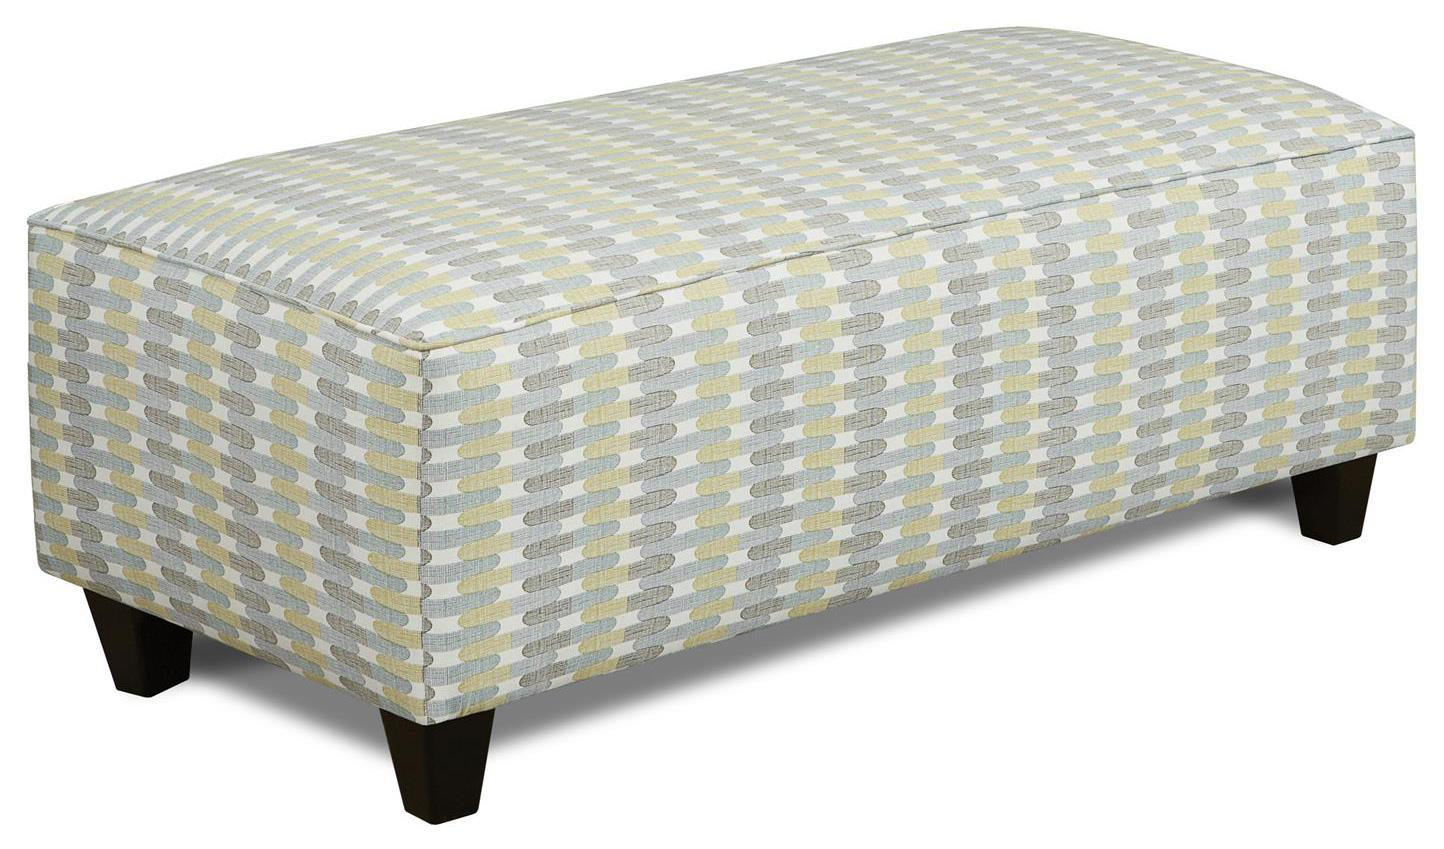 Fusion Furniture 100 Ottoman - Item Number: 100Textured Tiles Rain